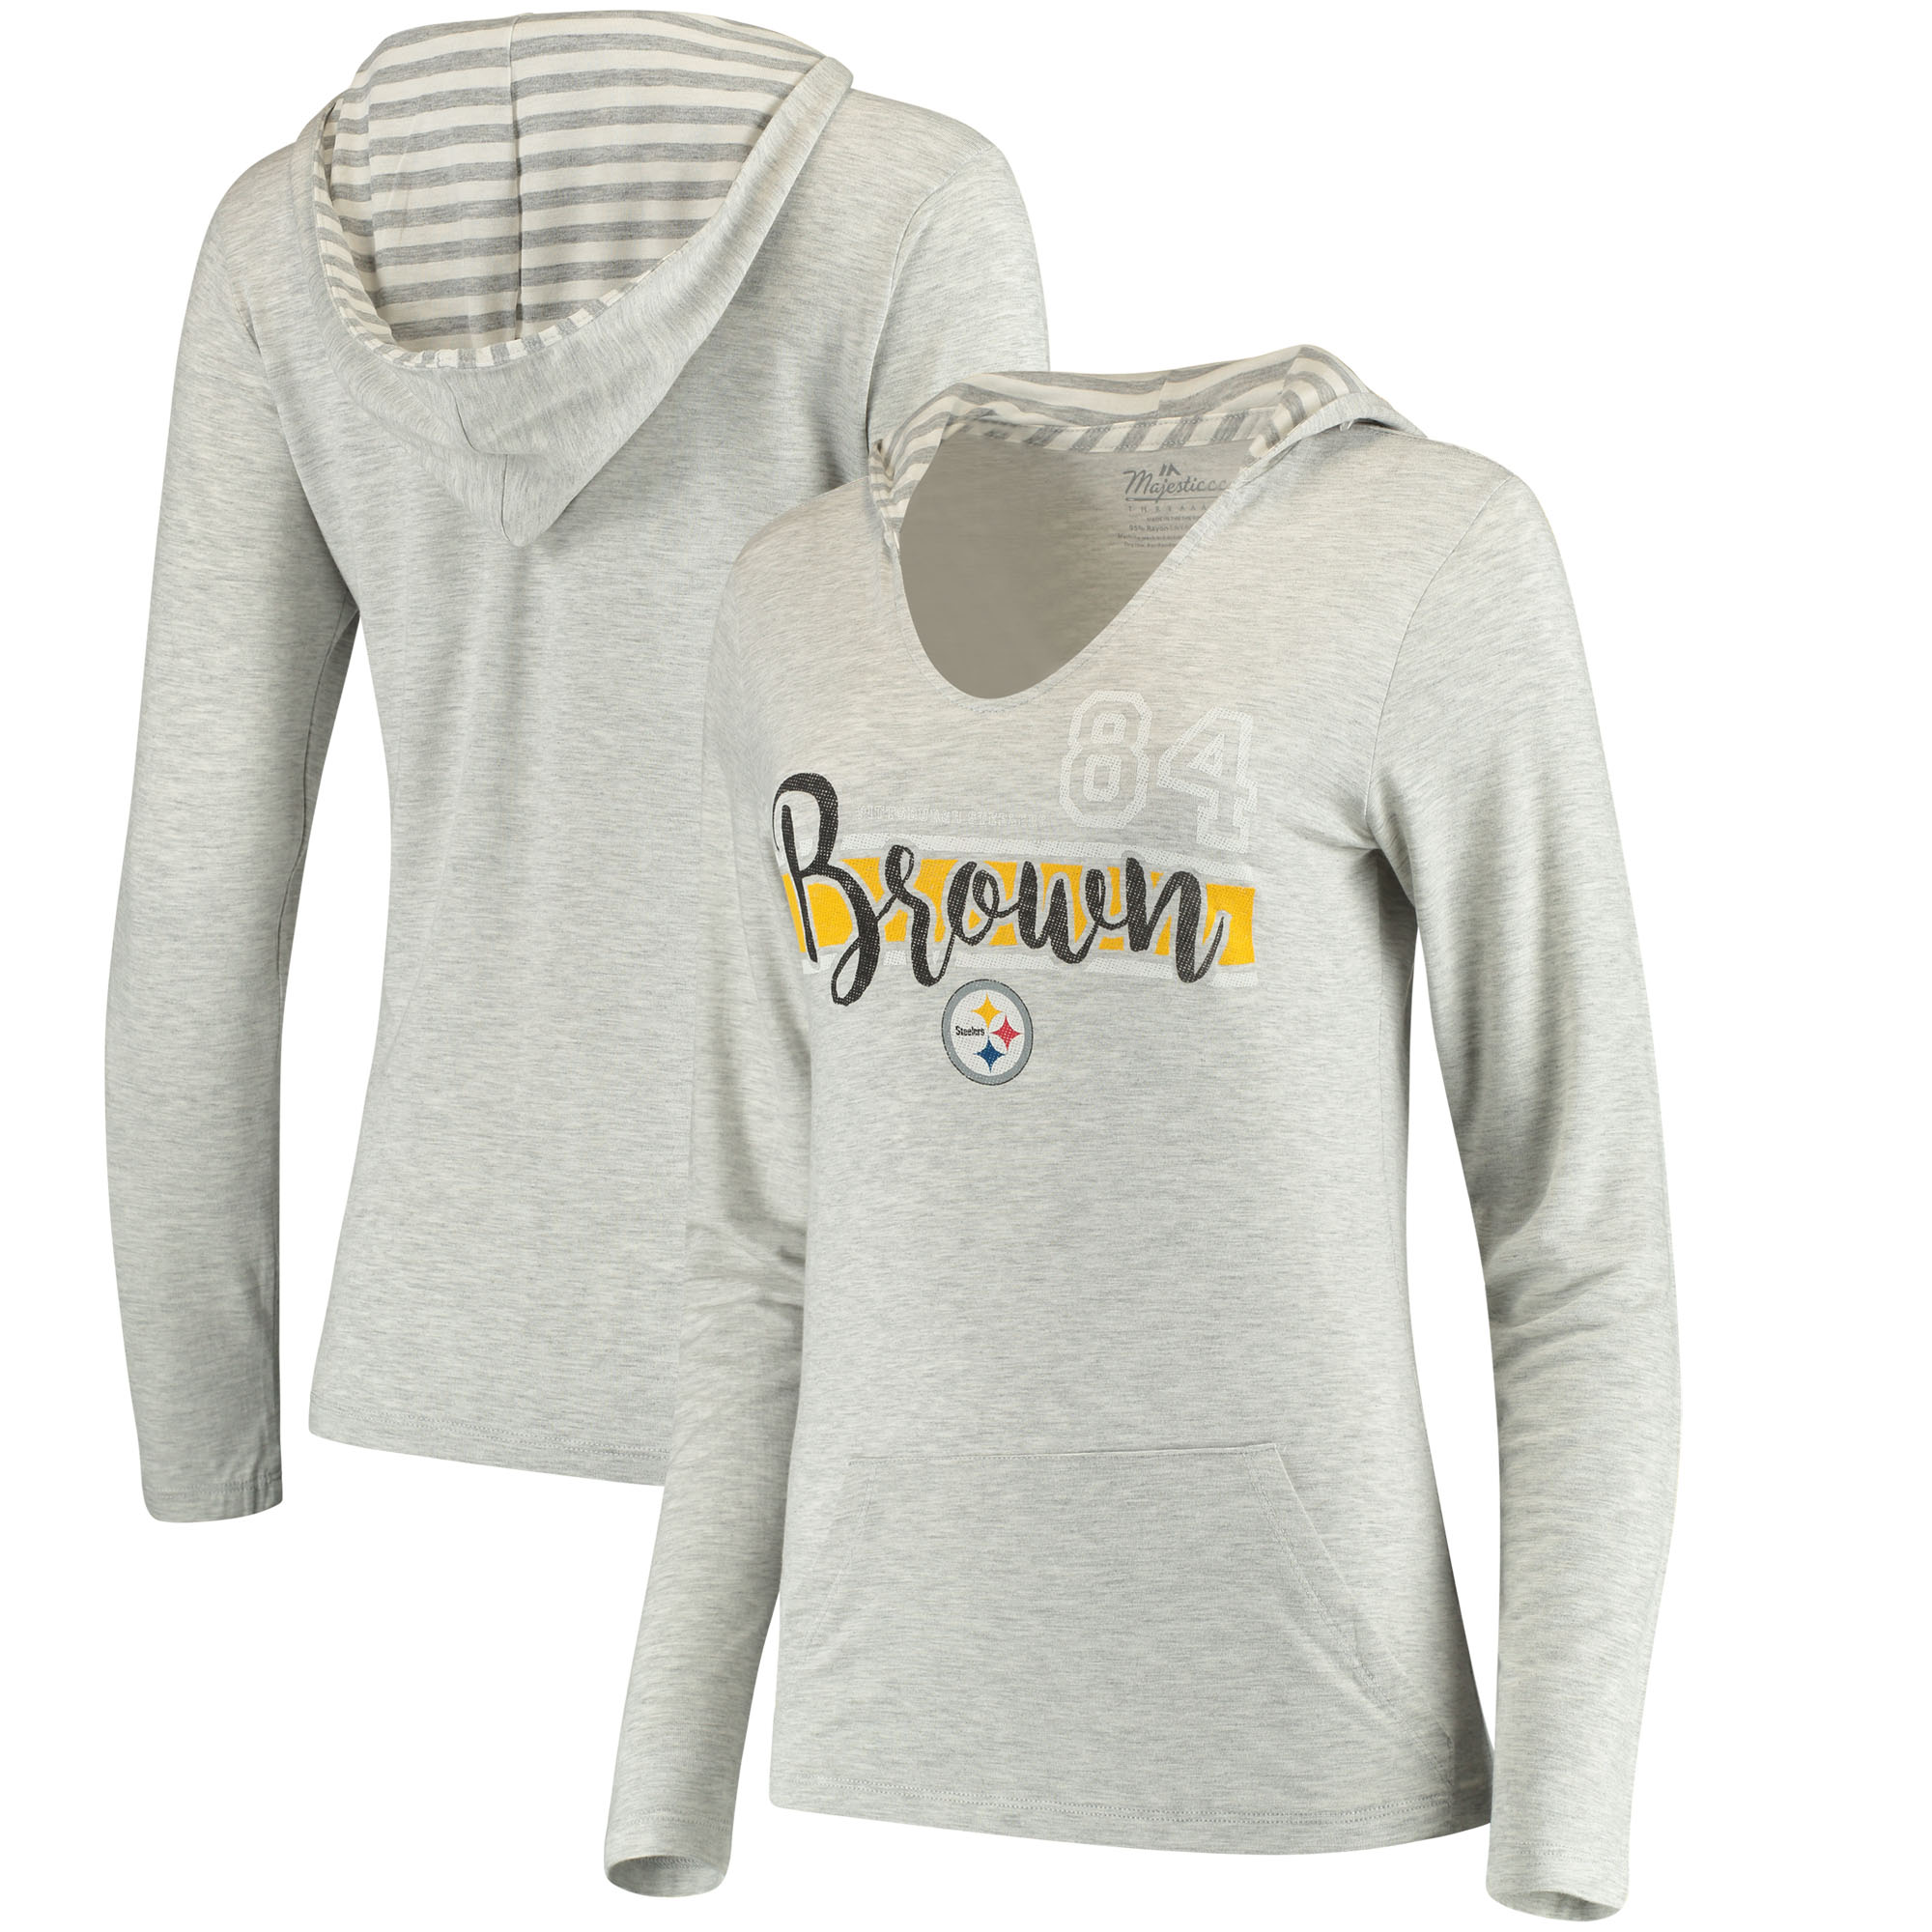 Antonio Brown Pittsburgh Steelers Women's Pocket Name & Number Hoodie T-Shirt - Gray